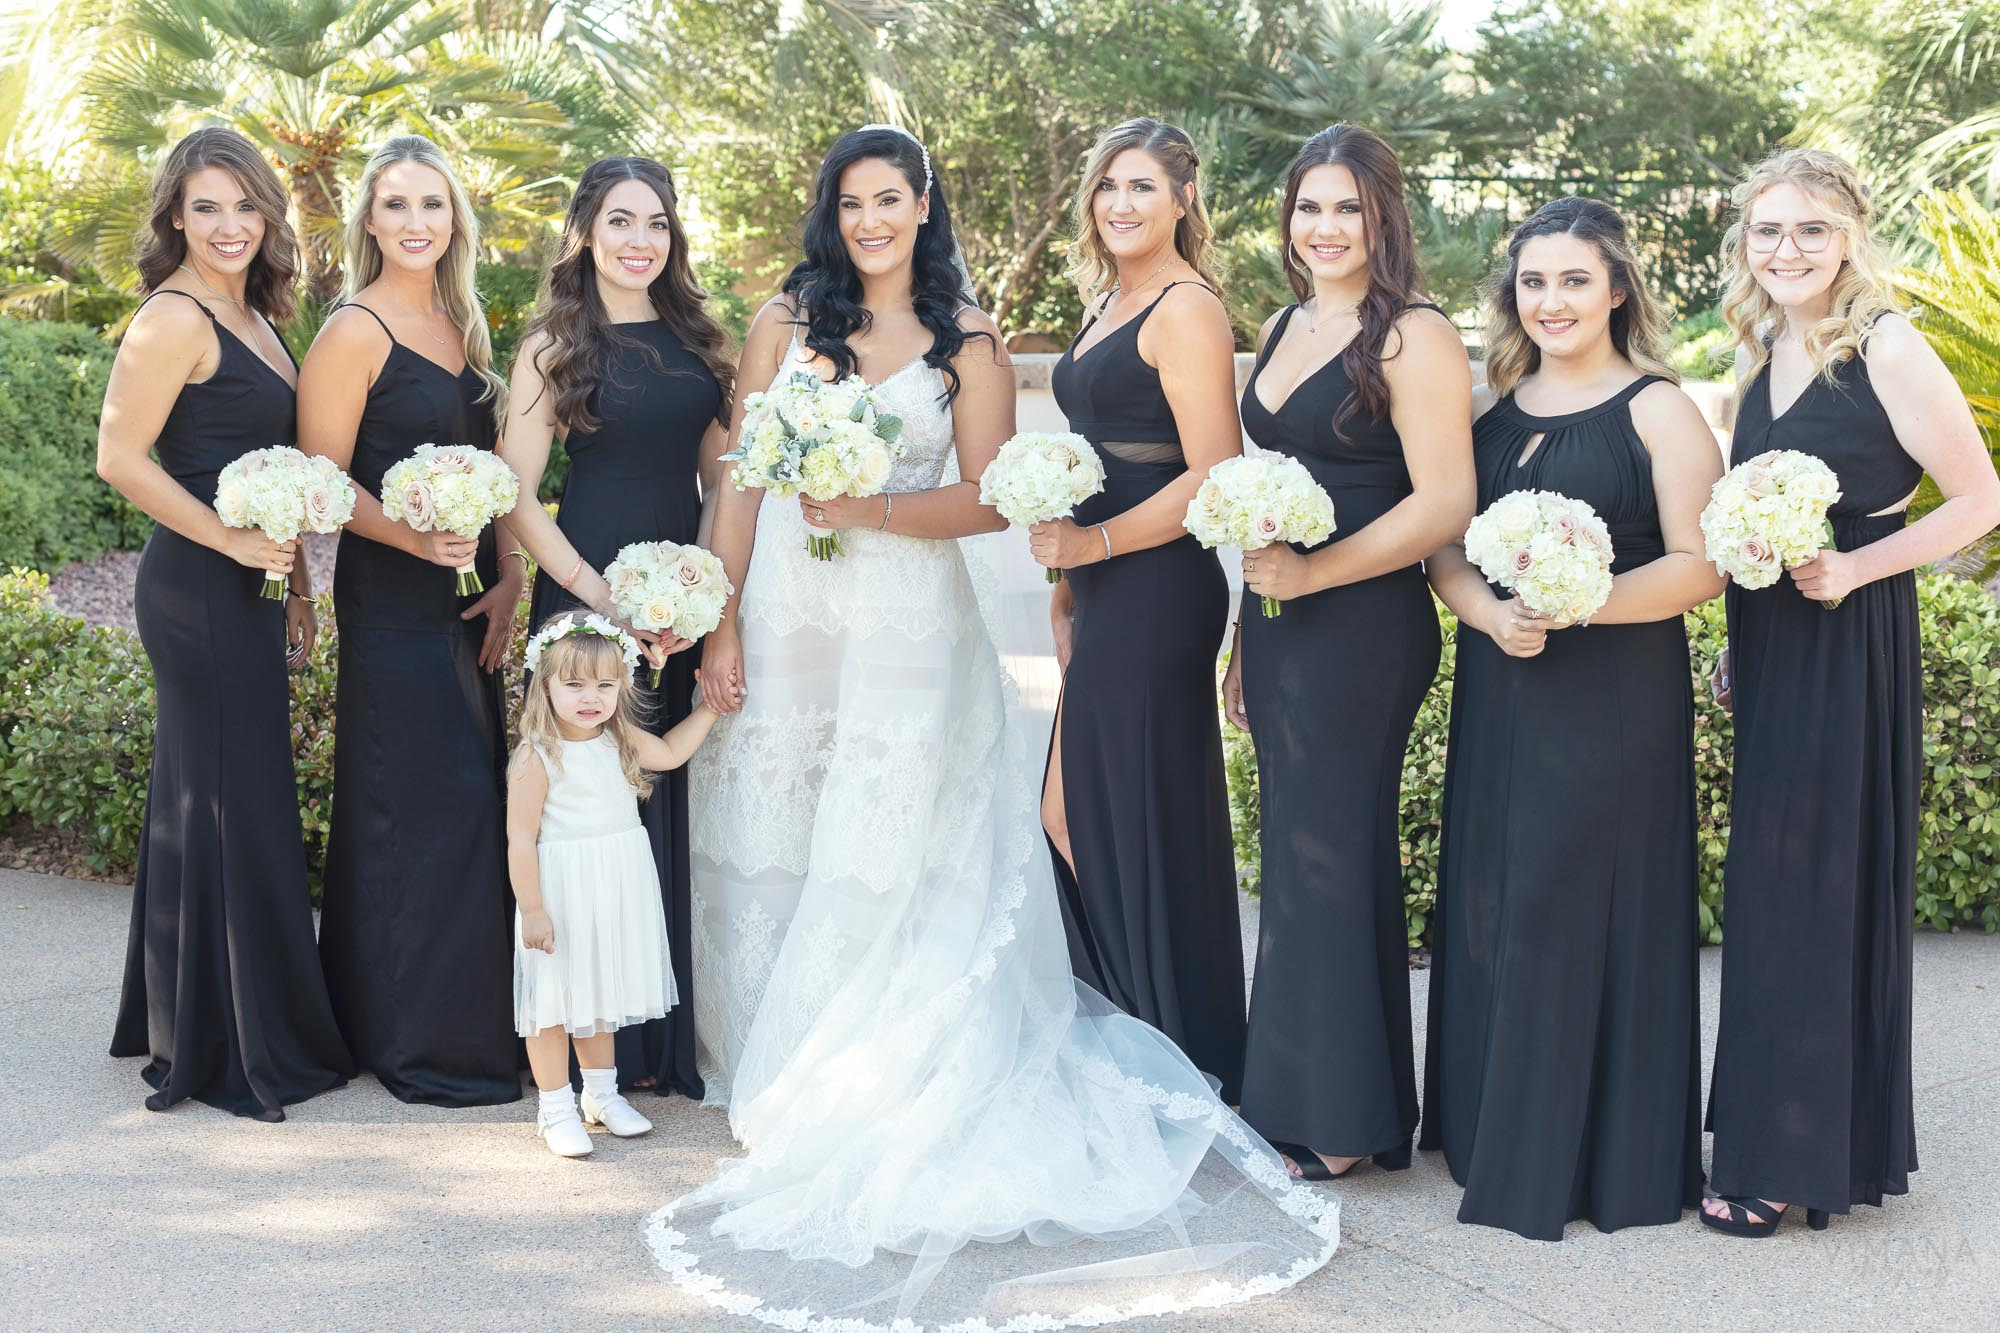 Bride with Bridesmaids at Emerald at Queensrirdge